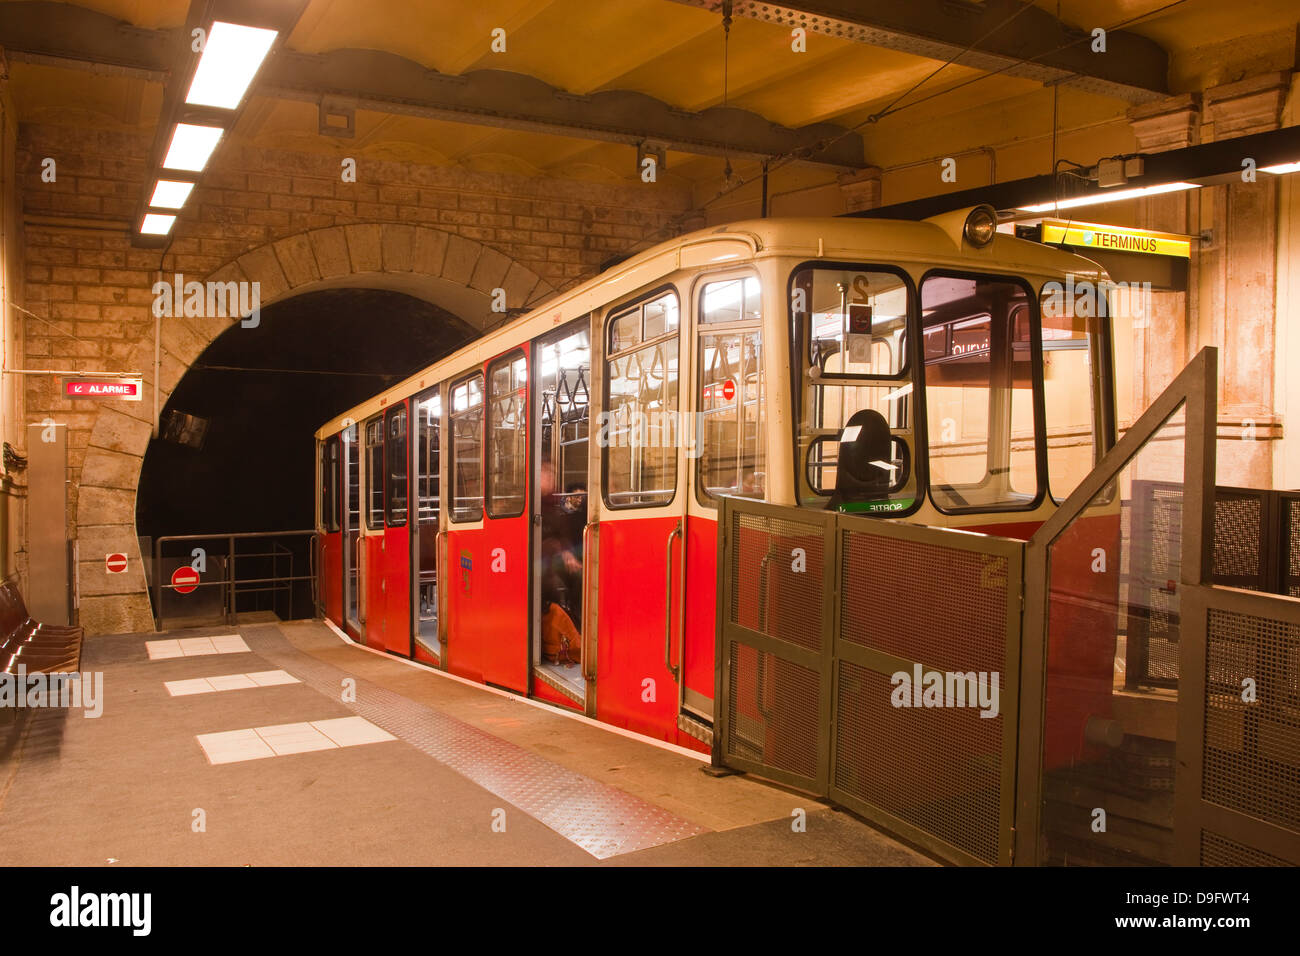 The funicular railway in the city of Lyon, Rhone-Alpes, France Stock Photo